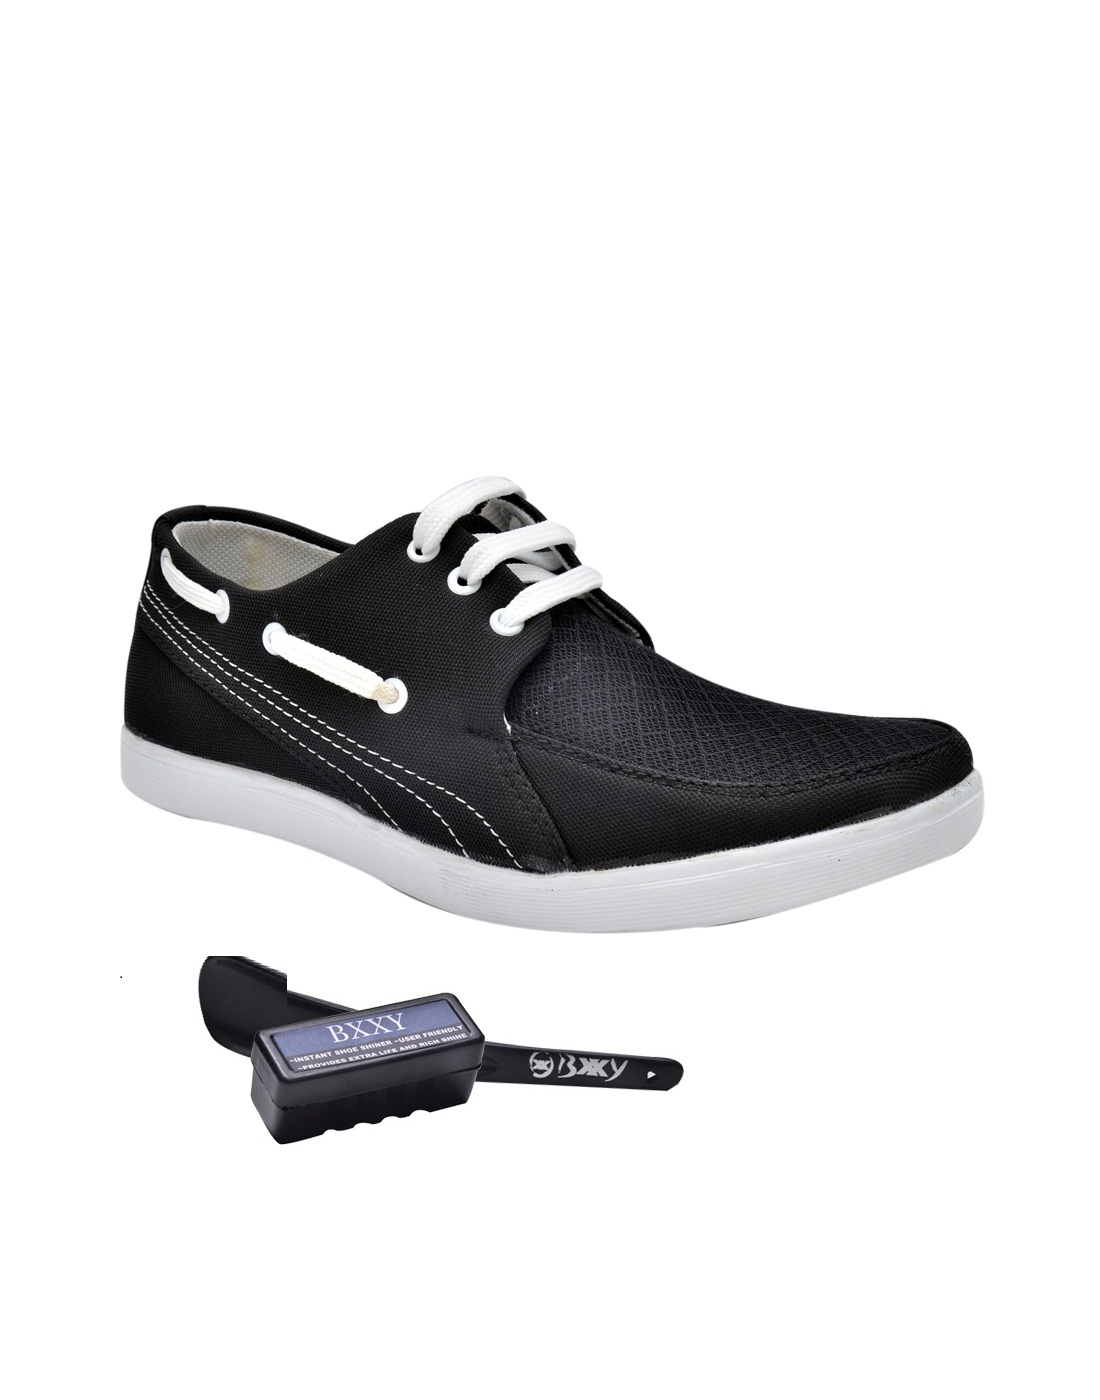 bxxy black comfortable casual shoes buy from